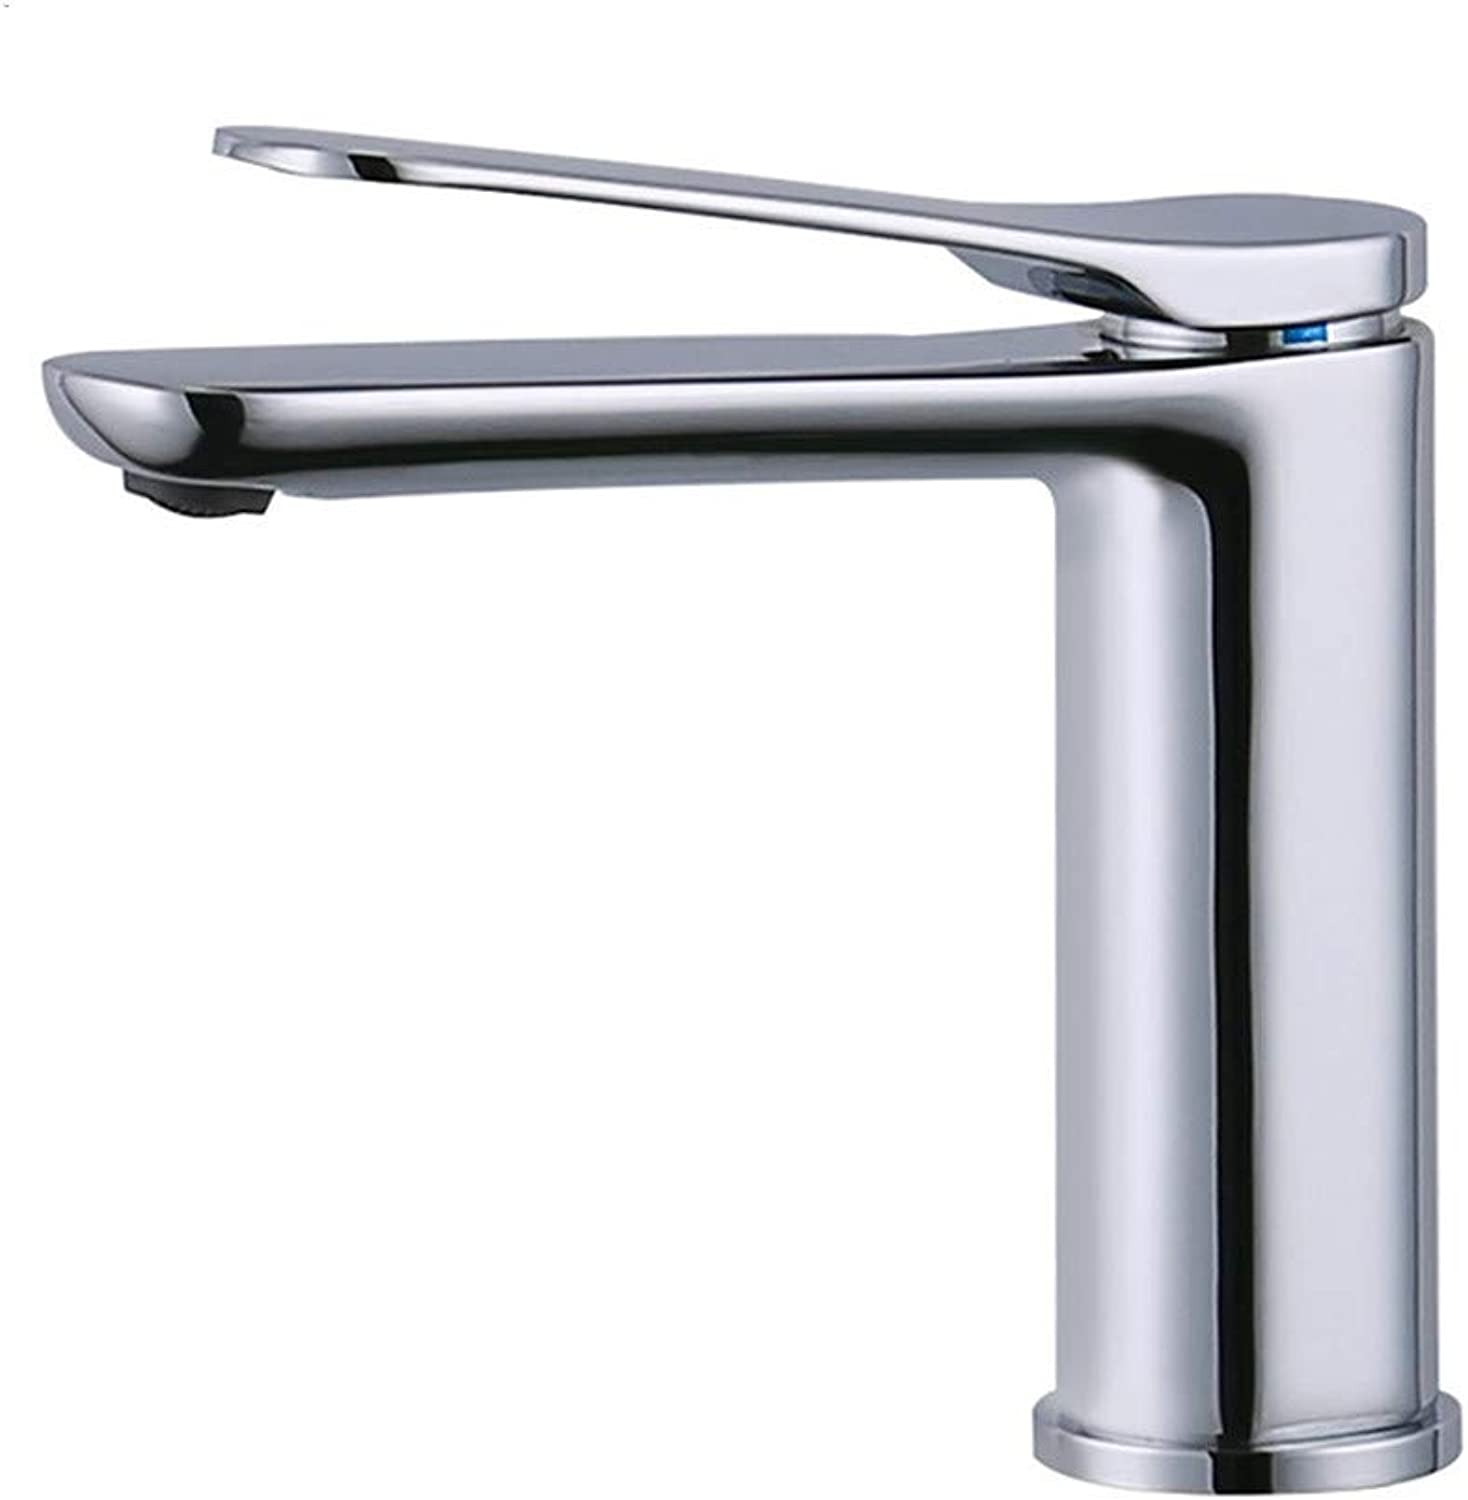 PajCzh Taps Taps Faucet Faucet Sink Bathroom Sink Taps Copper Chrome-Plated Long Mouth Hot And Cold Basin Faucet Apartment Home Mixed Water Saving Basin Faucet